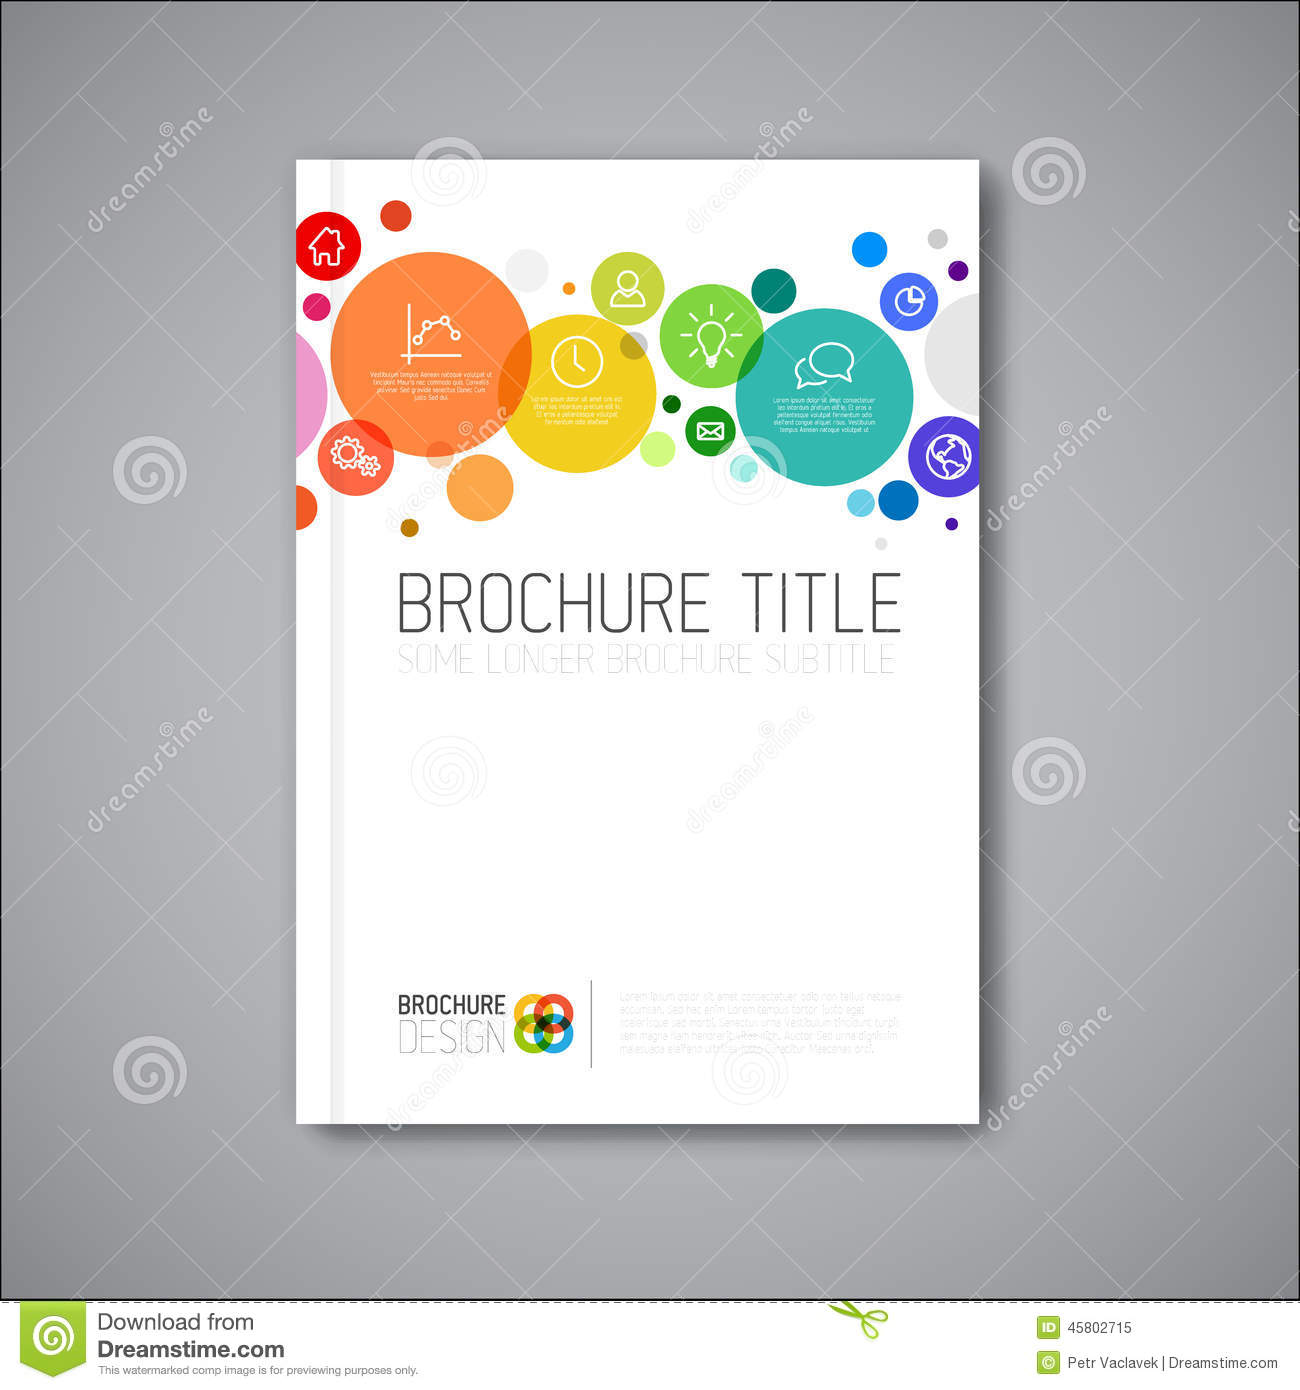 modern brochure design templates - modern vector abstract brochure design template stock